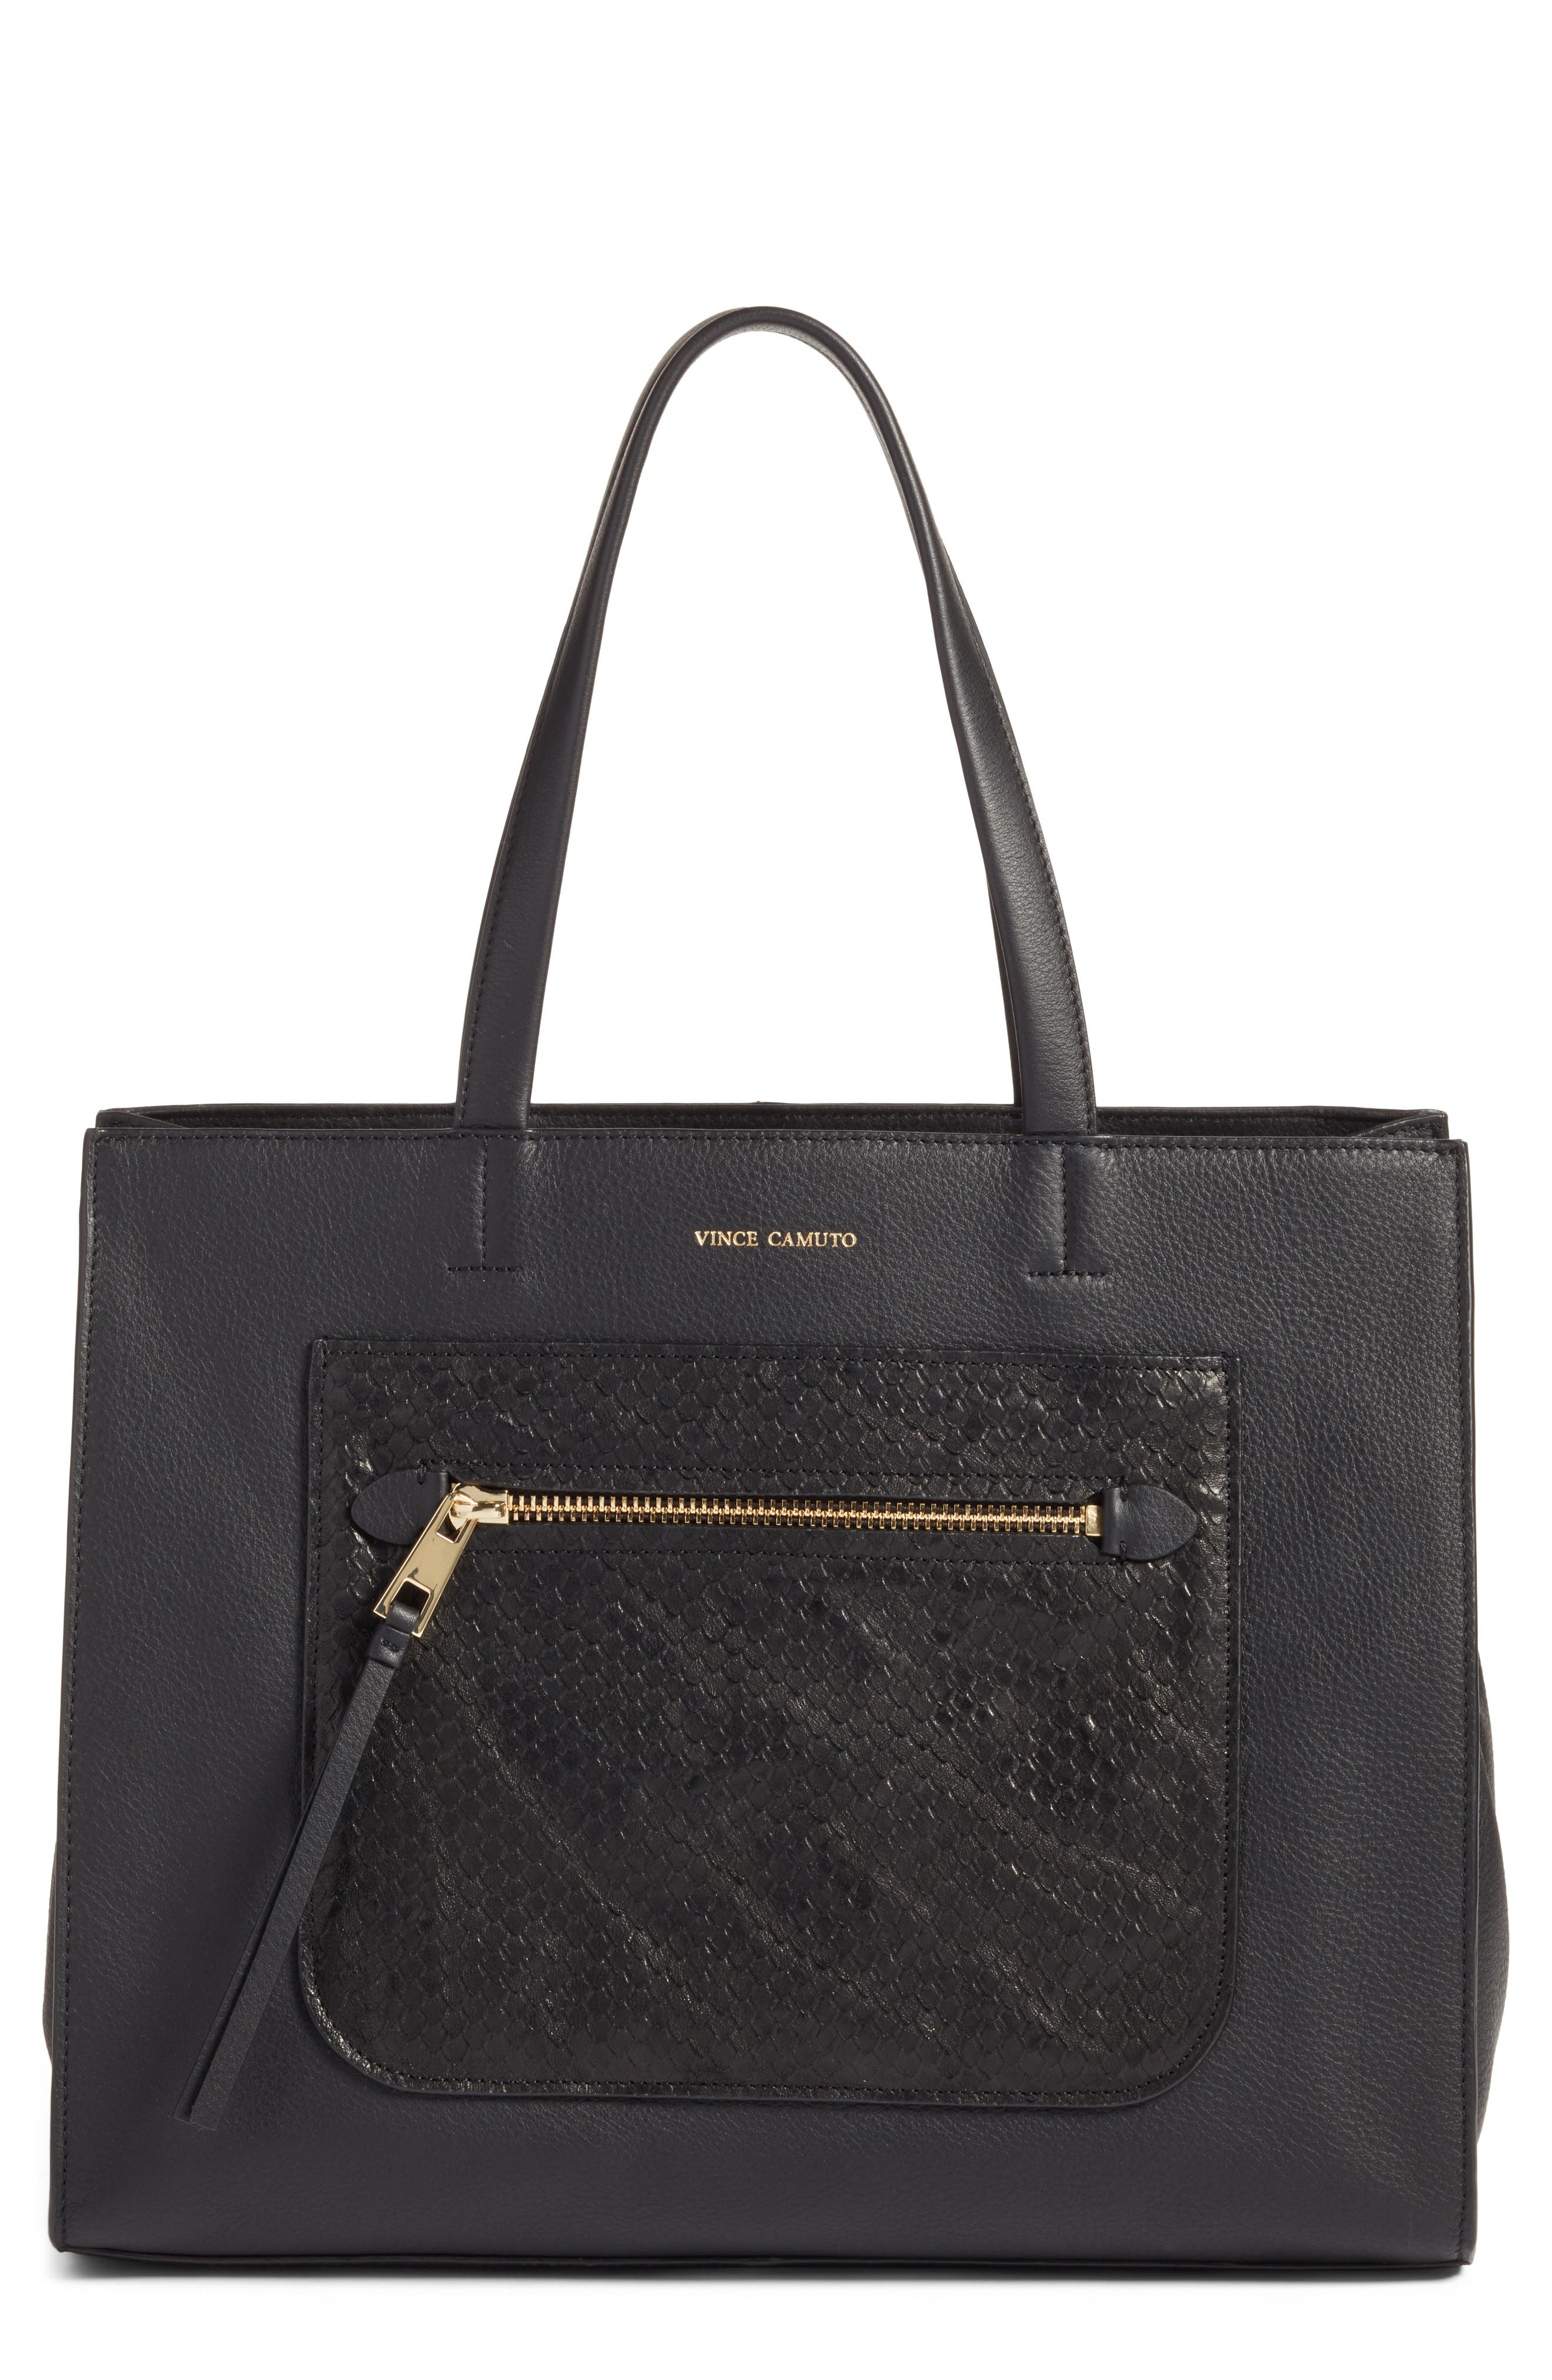 VINCE CAMUTO Elvan Leather Tote, Main, color, 001